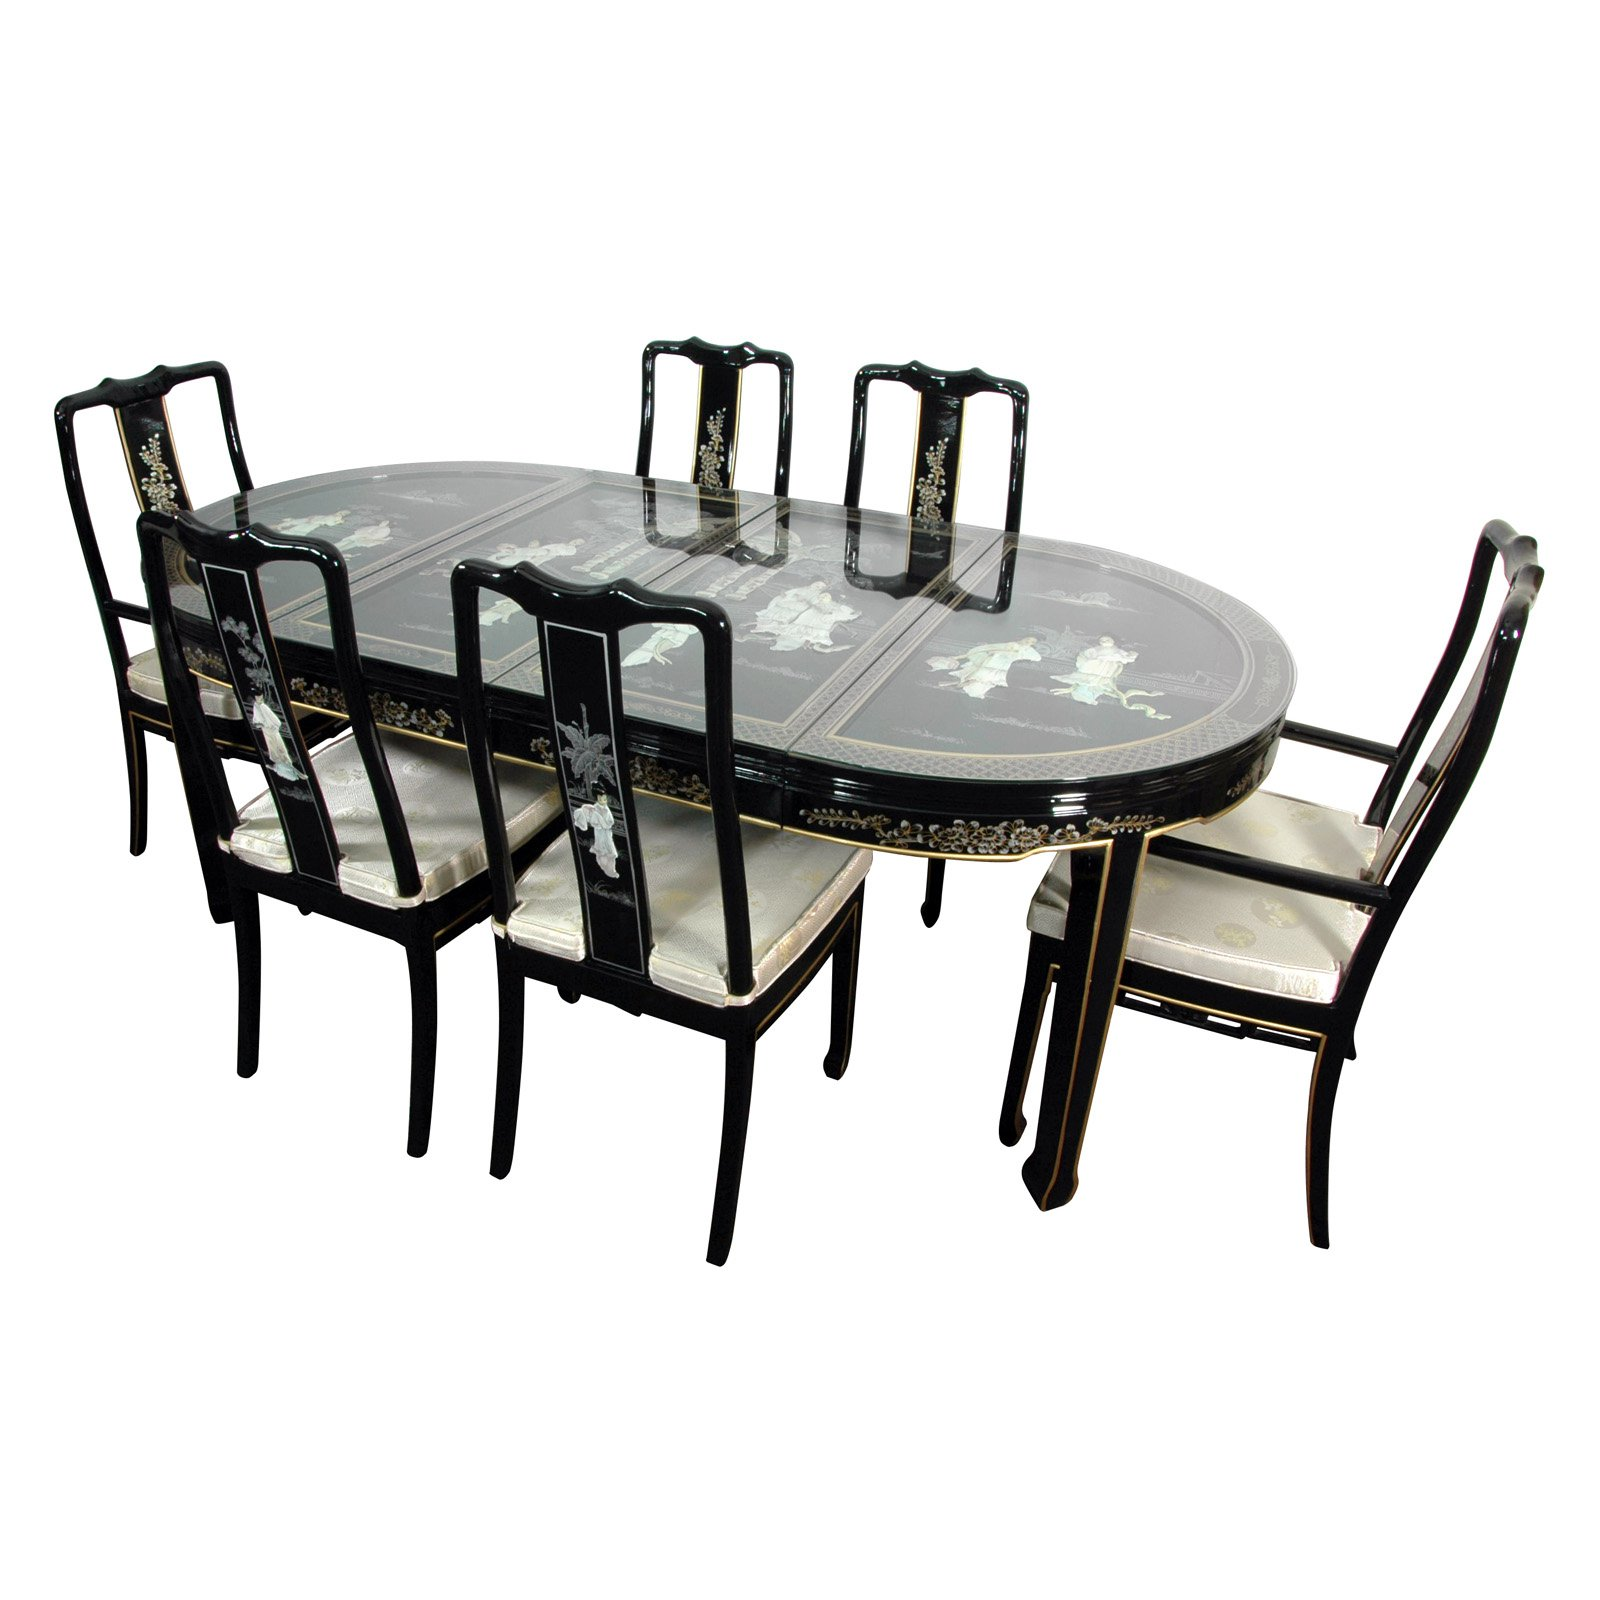 Oriental Furniture Lacquer Dining Room Set, Black Mother of Pearl